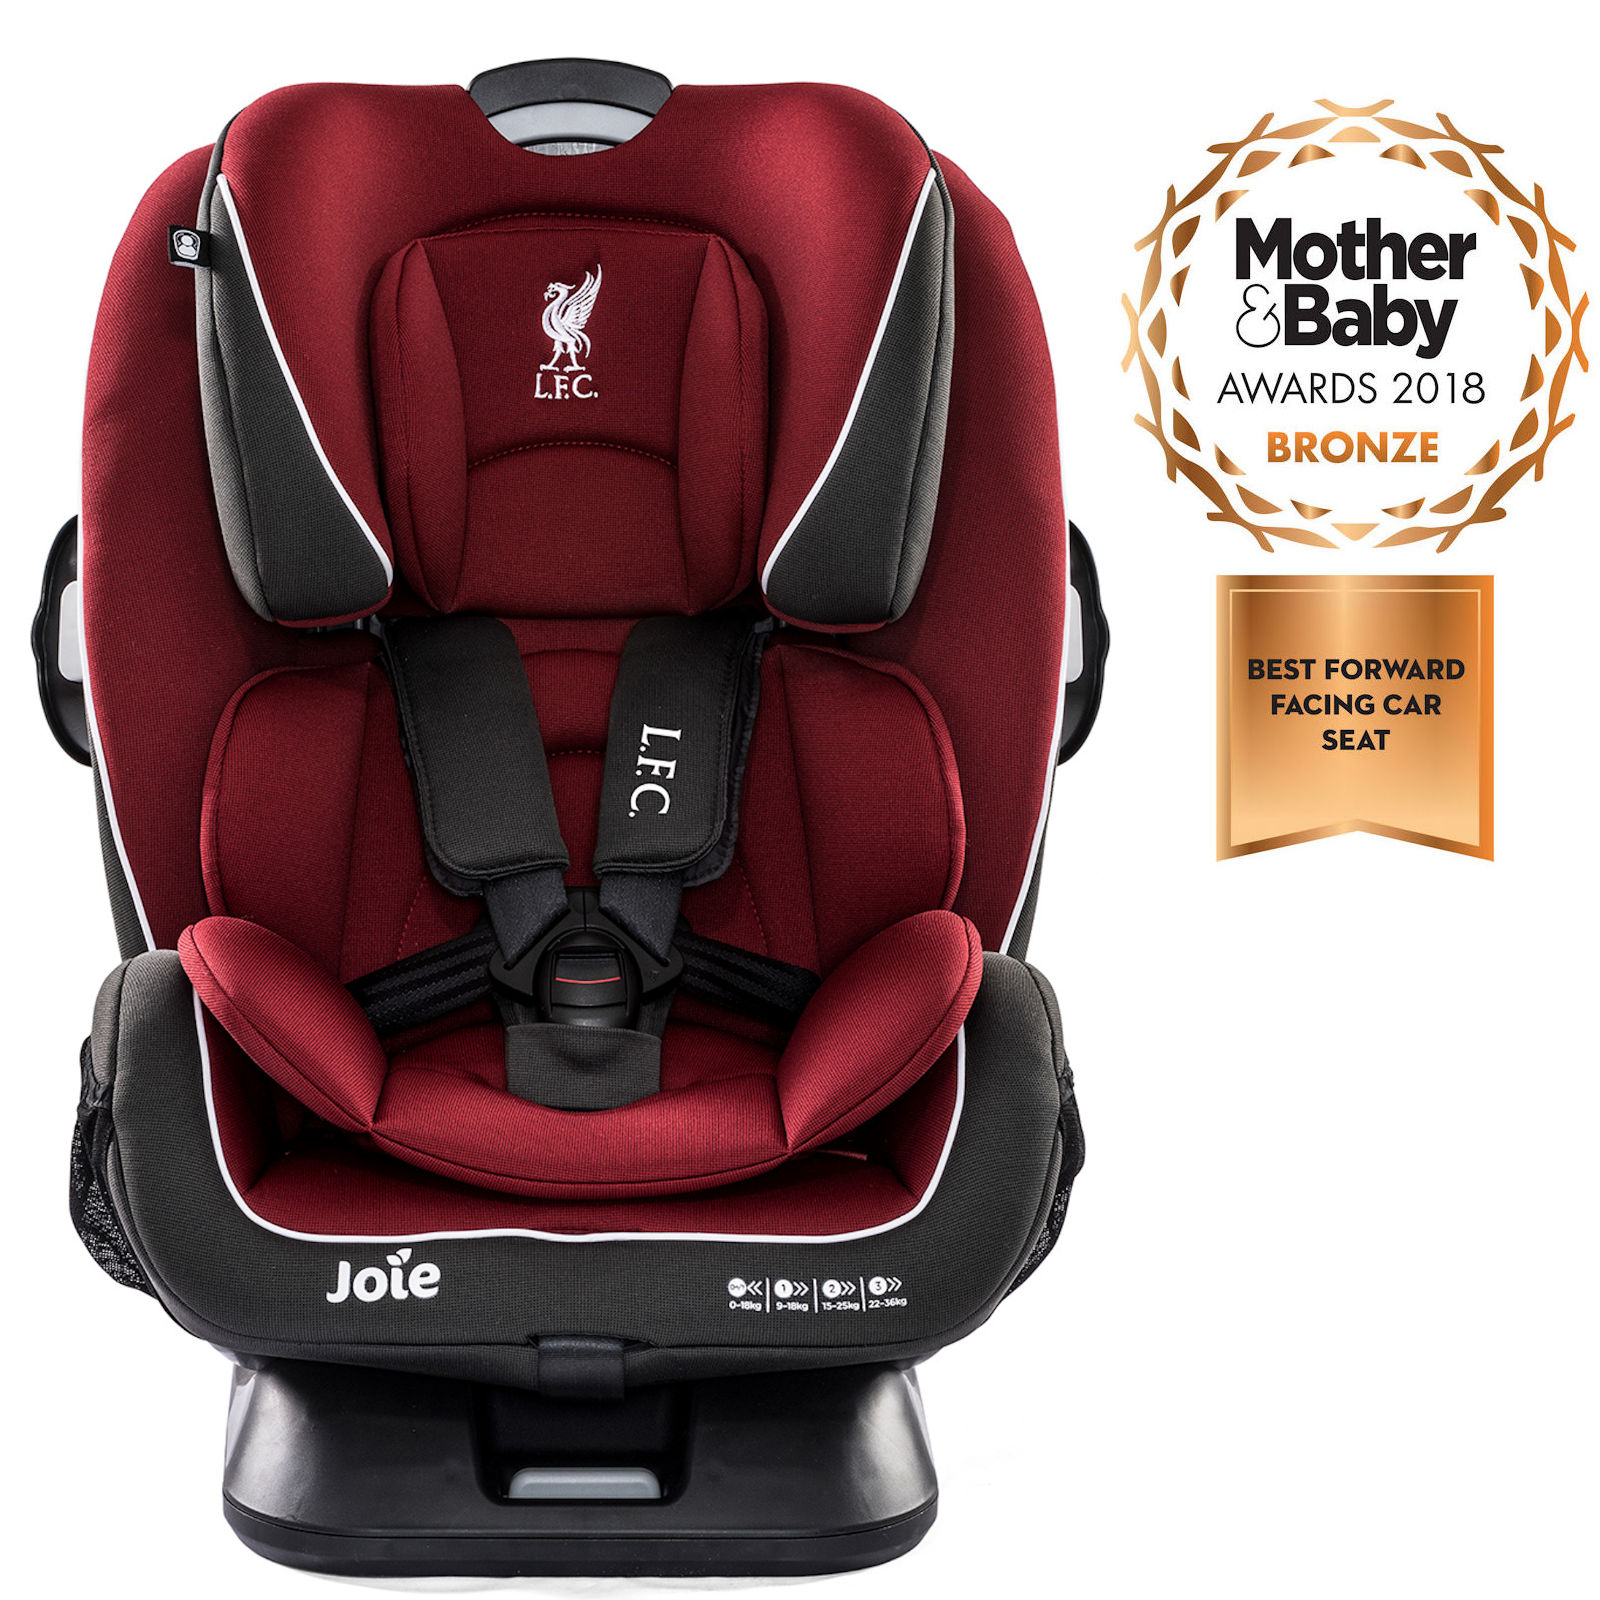 Joie Every Stage FX Isofix Group 0+,1,2,3 Car Seat - LFC | Buy at ...